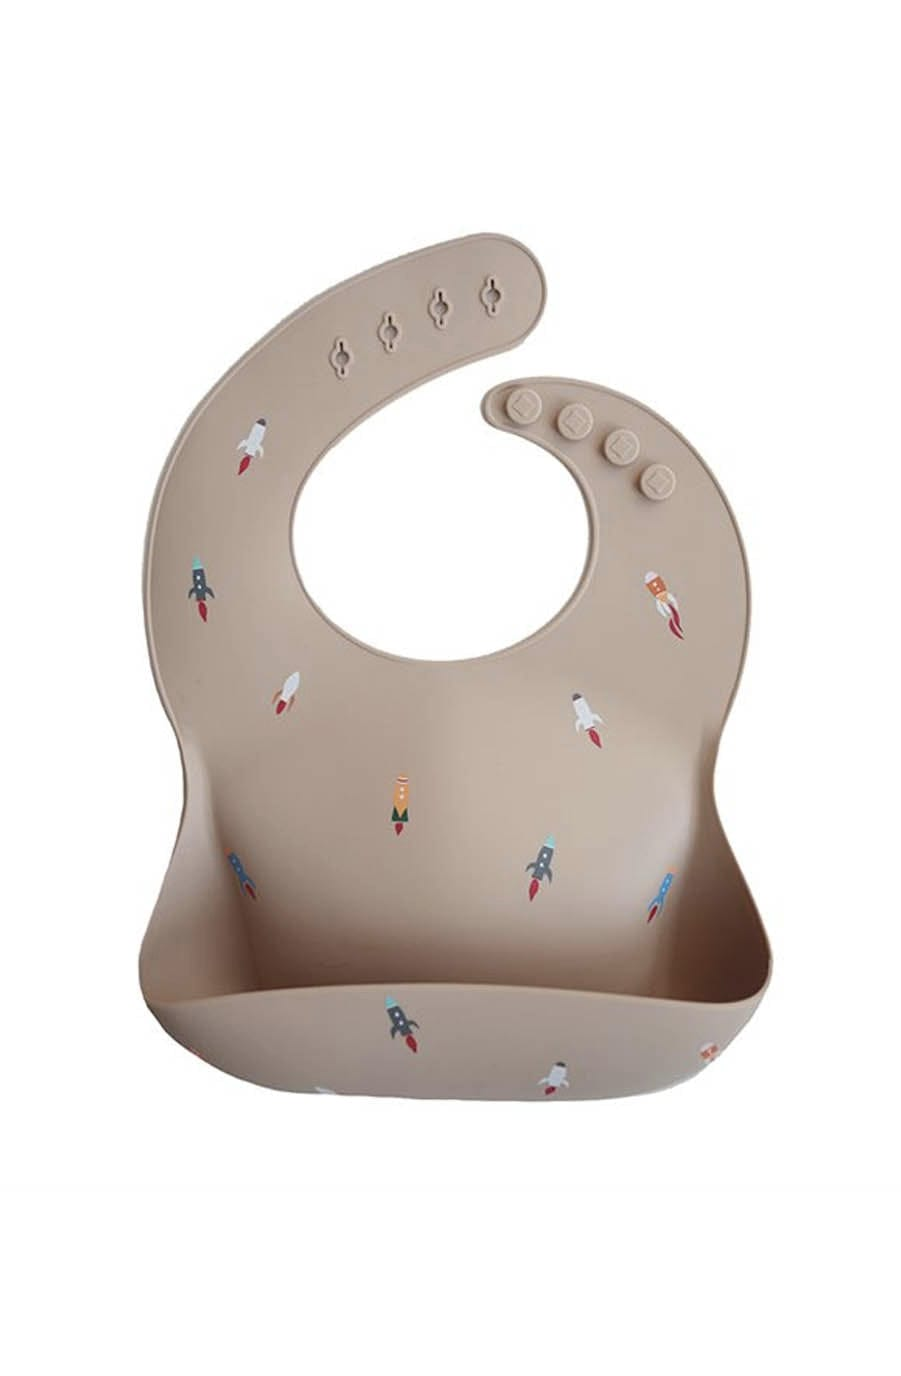 Mushie Silicone Baby Bib, Rocket - Hello Little Birdie